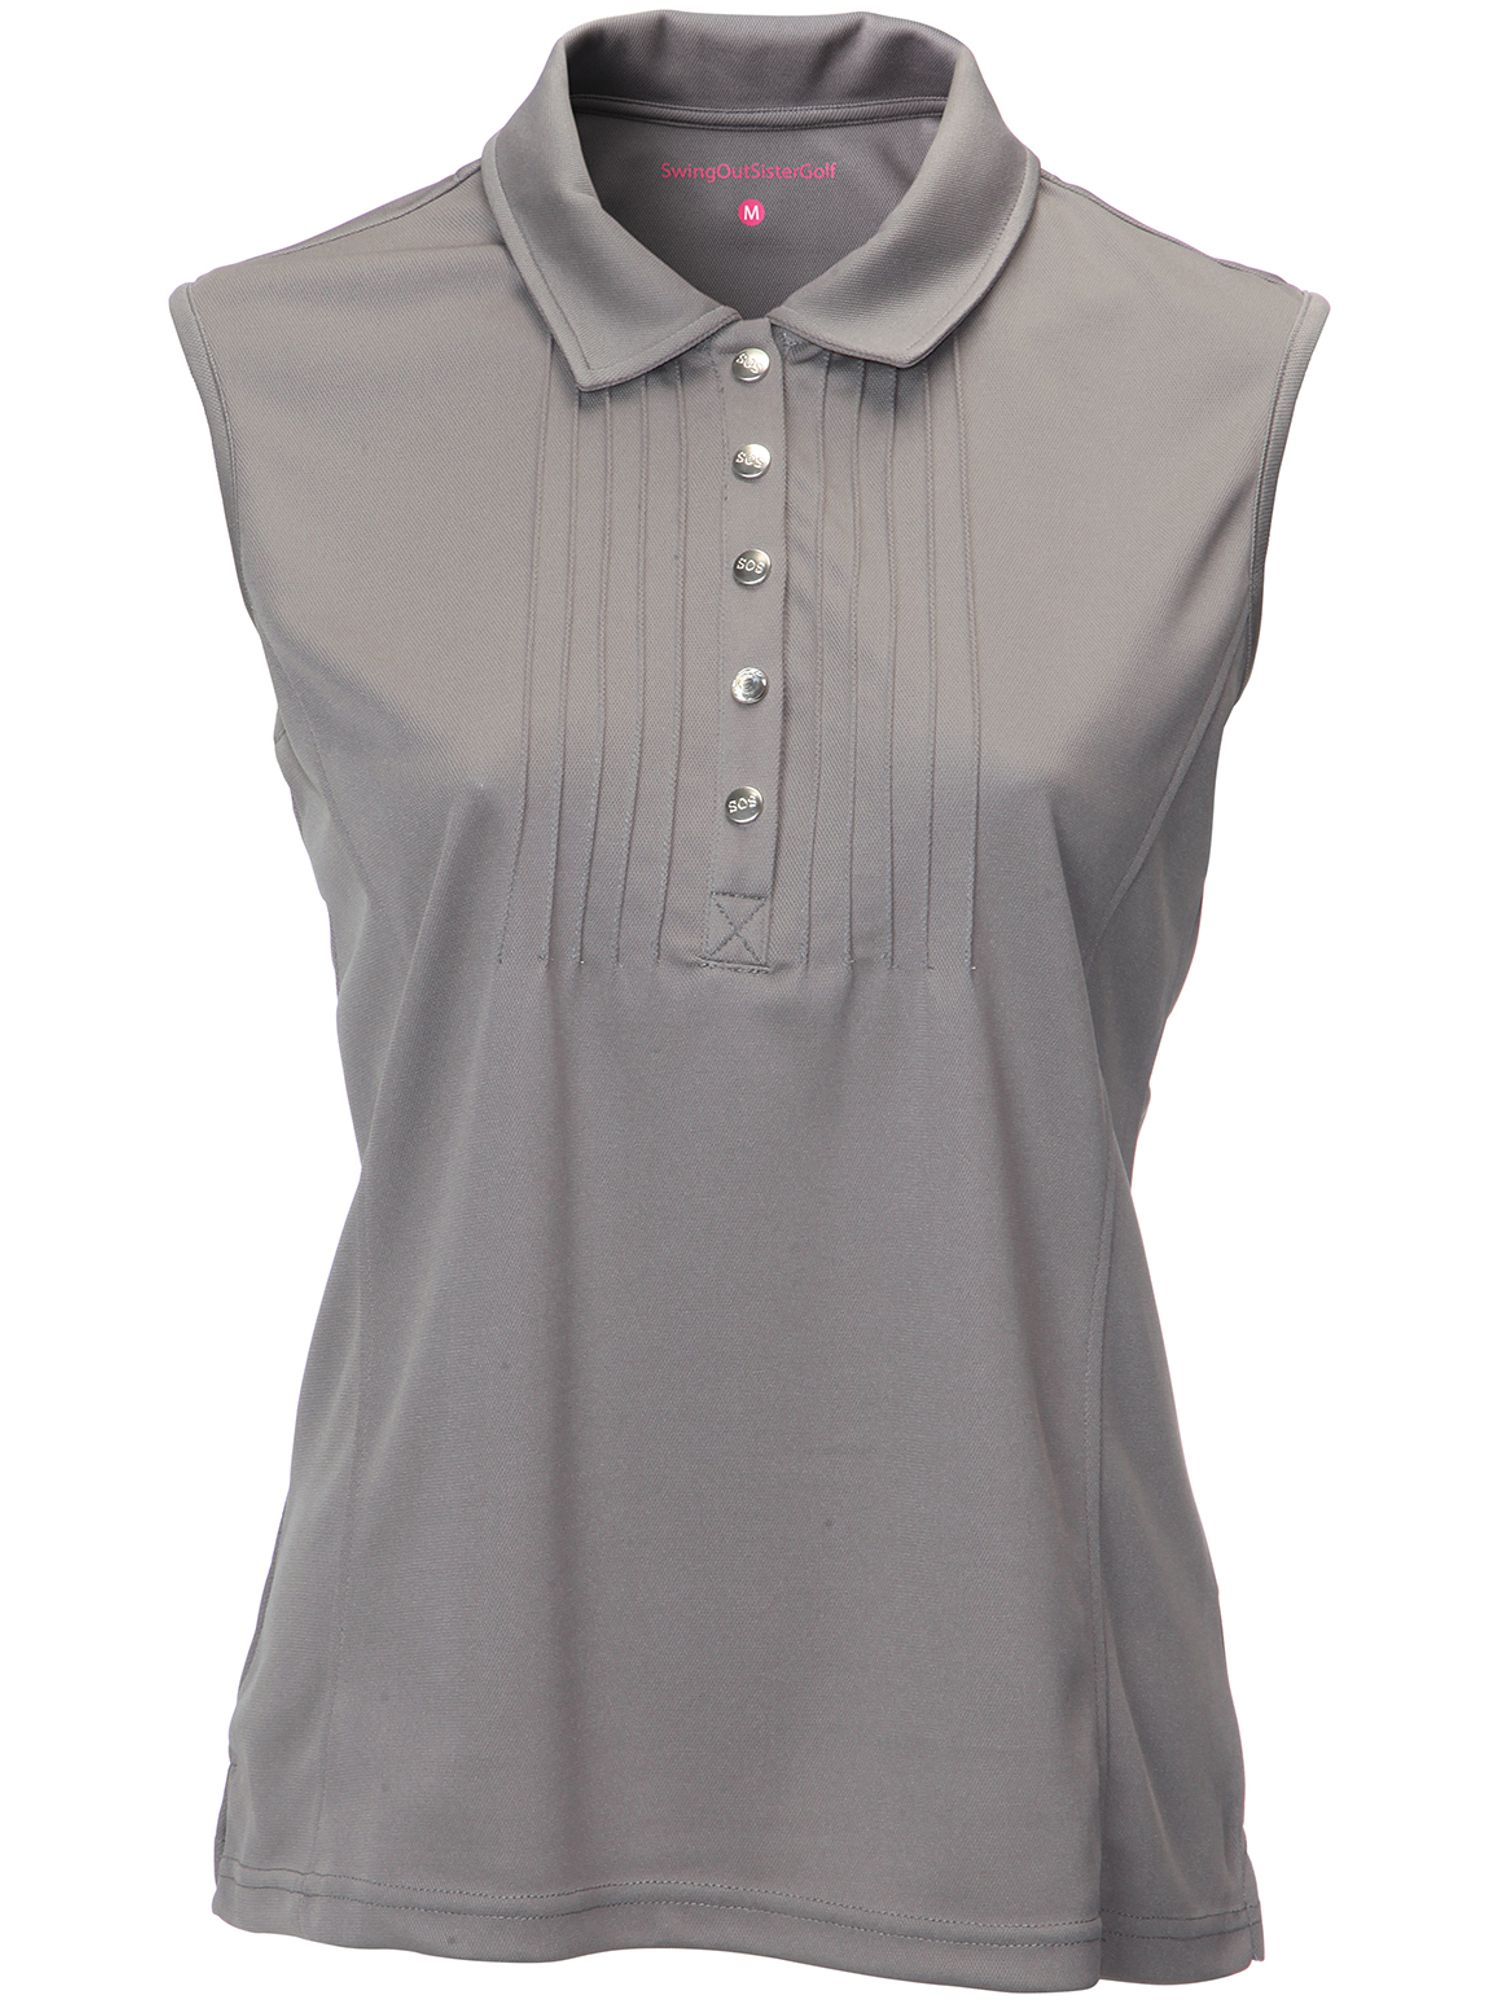 Swing Out Sister Adele Pique Sleeveless Shirt, Grey